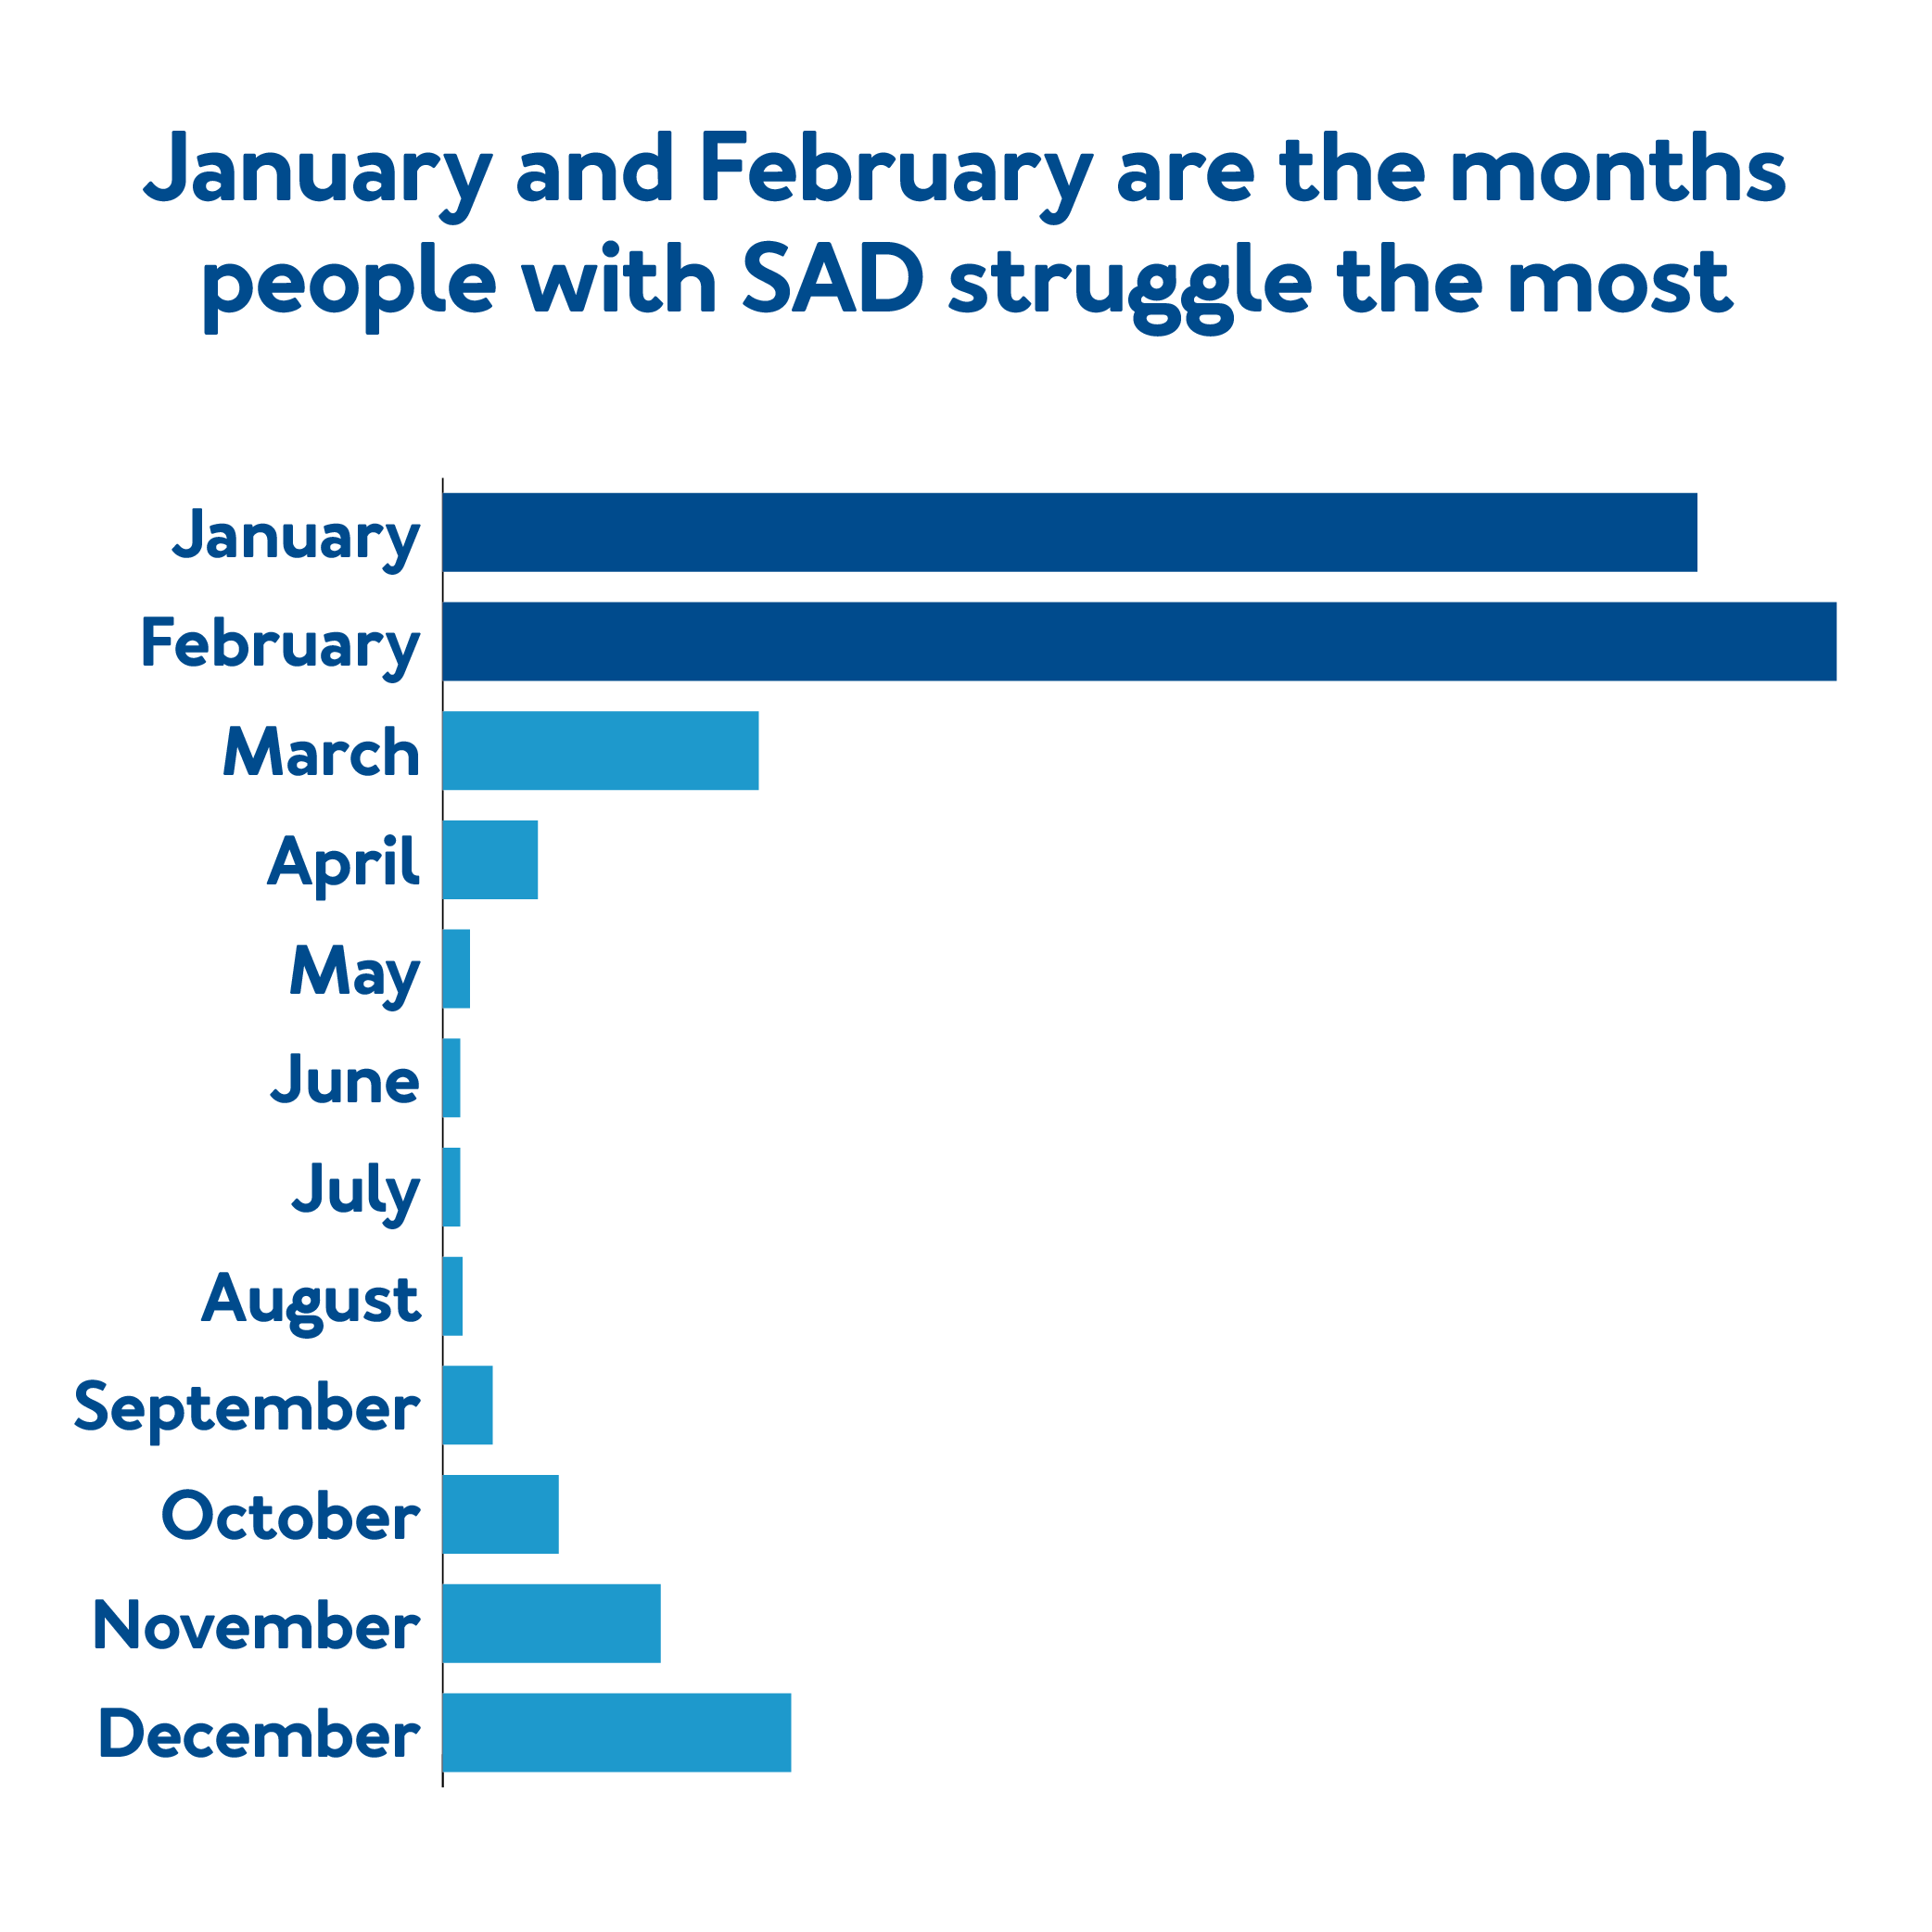 January and February are the months people with SAD struggle the most.